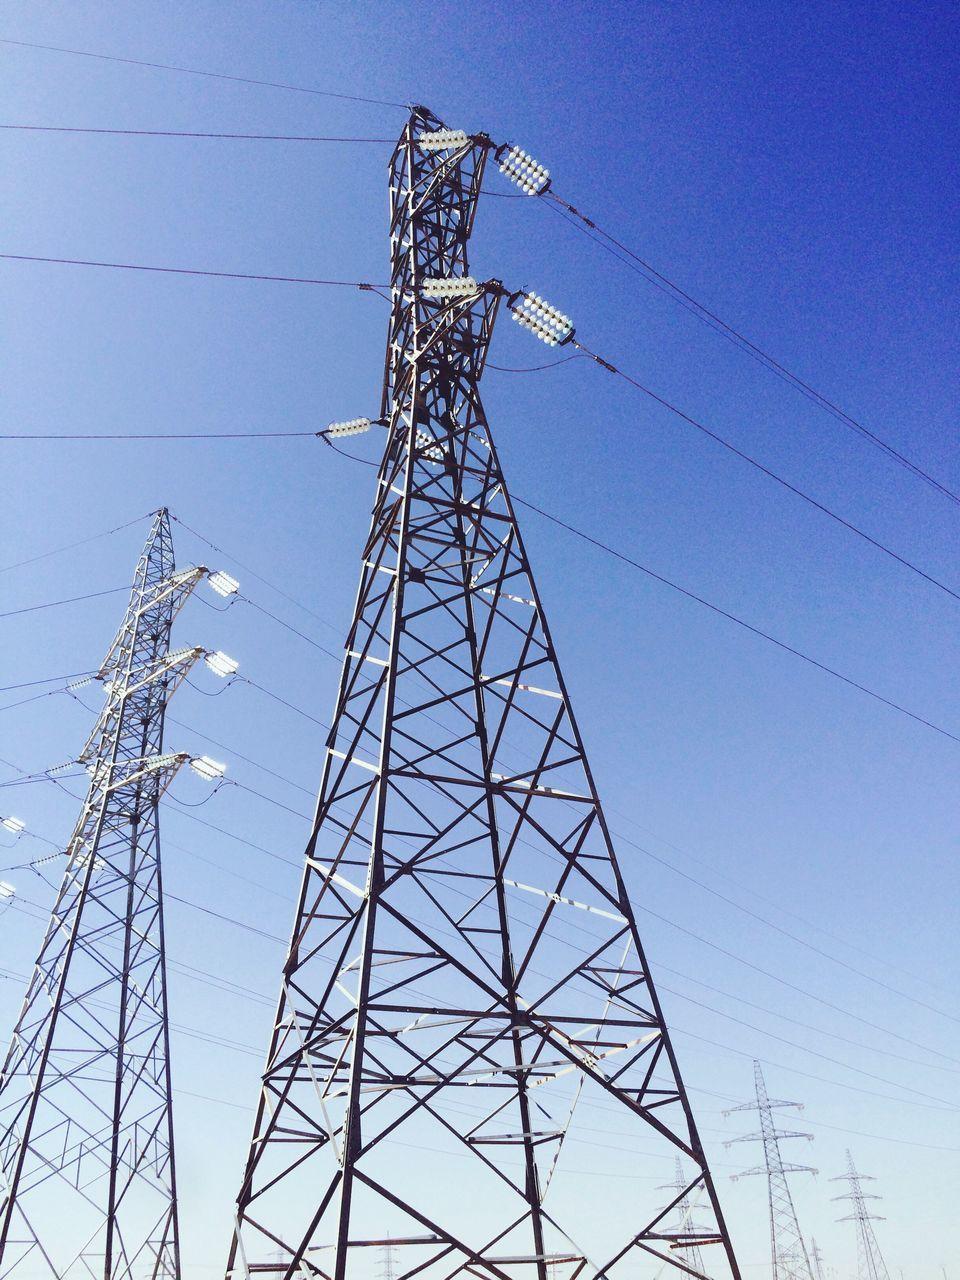 cable, electricity pylon, electricity, power supply, power line, connection, fuel and power generation, electricity tower, low angle view, clear sky, tall, no people, day, technology, outdoors, sky